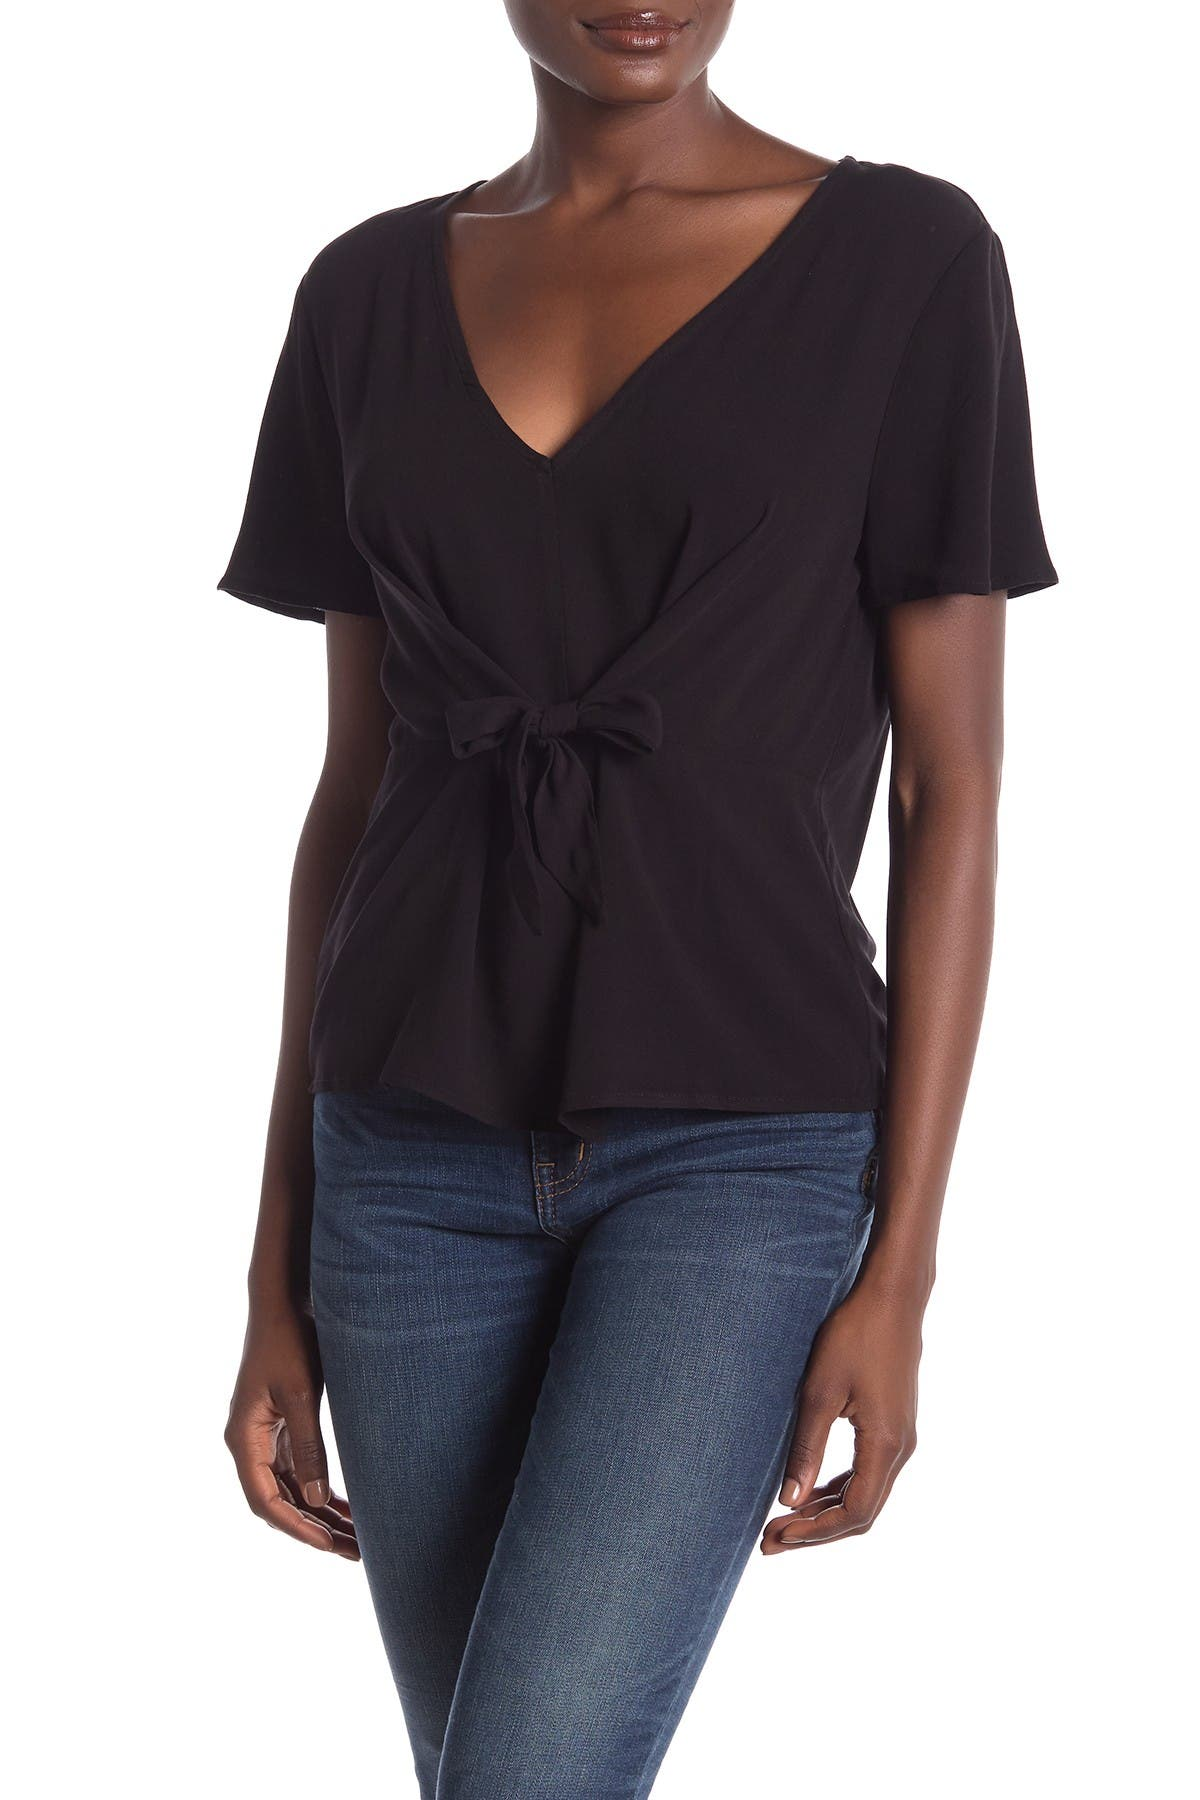 Image of 14th & Union V-Neck Tie Front Top